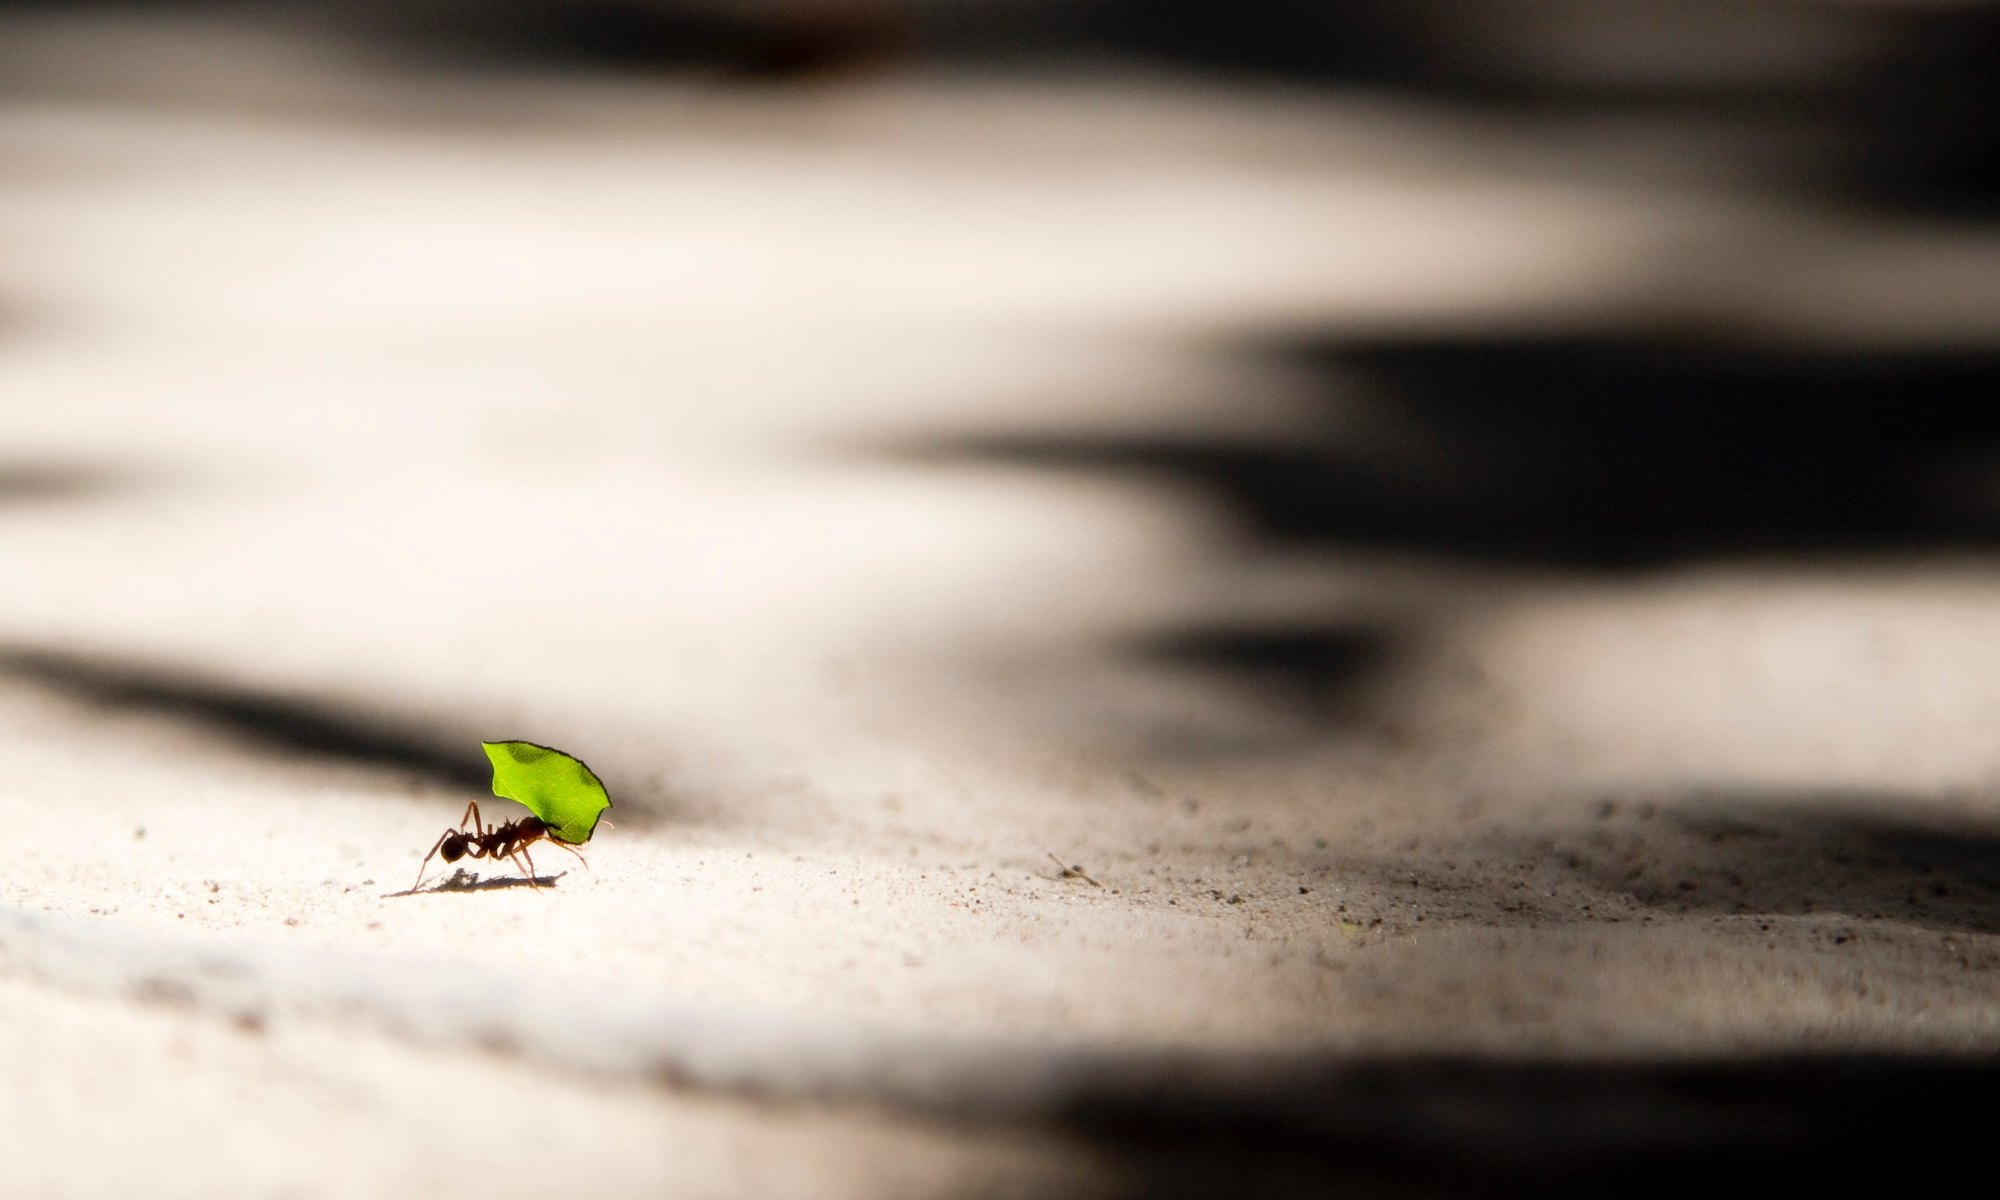 Ant working hard to carry a green leaf